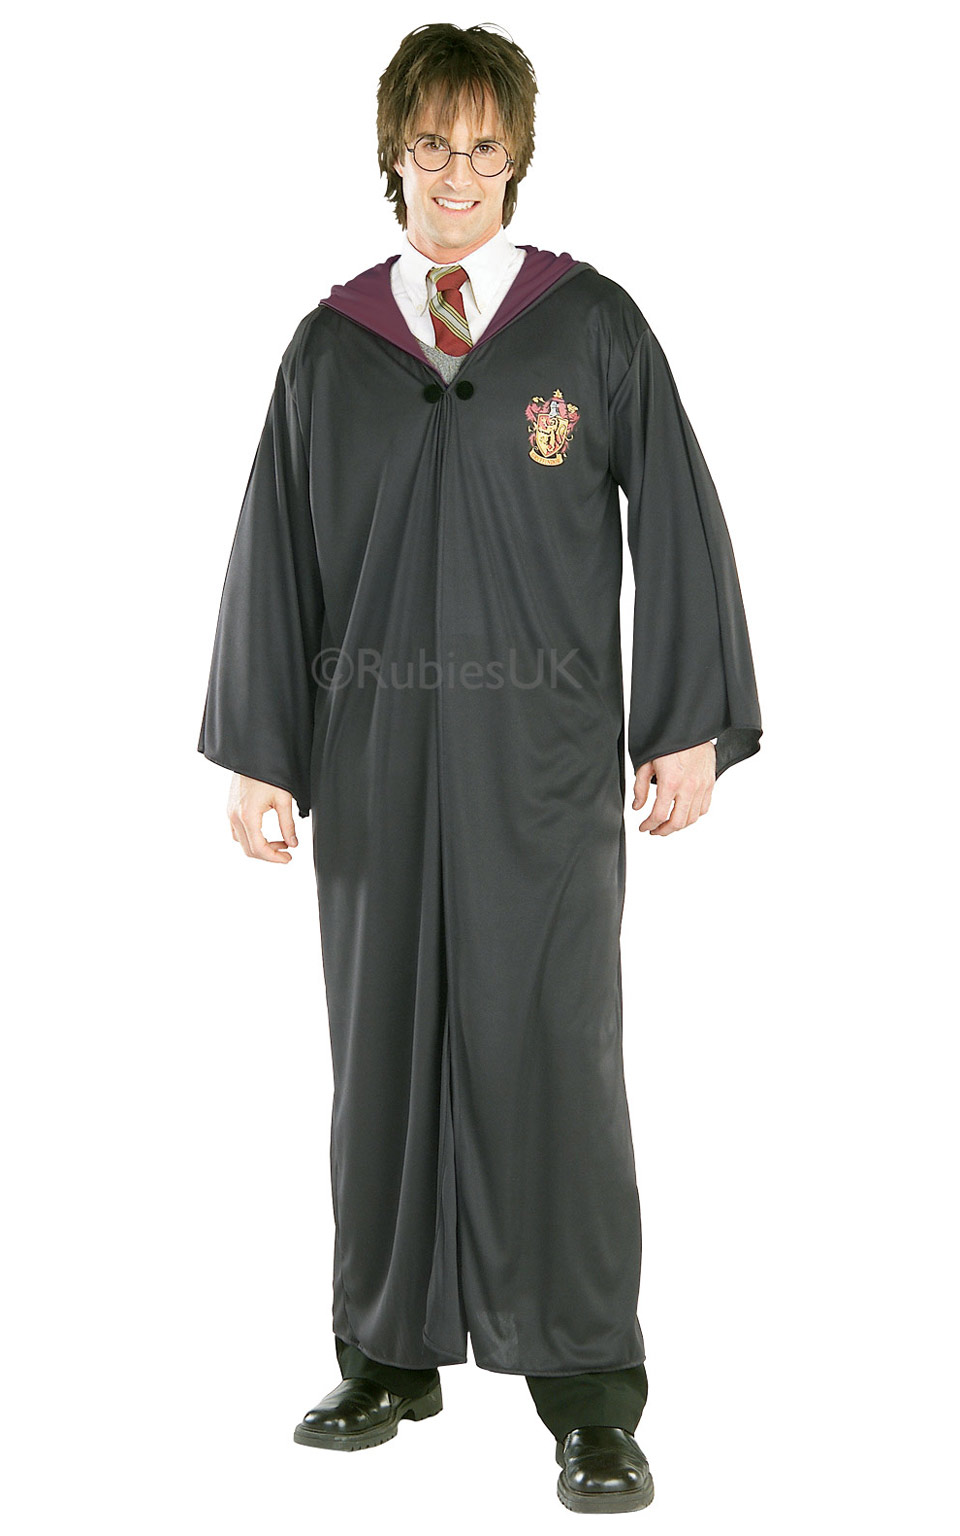 Harry Potter Robe Fancy Dress Costume Outfit Adult Mens Male Cloak